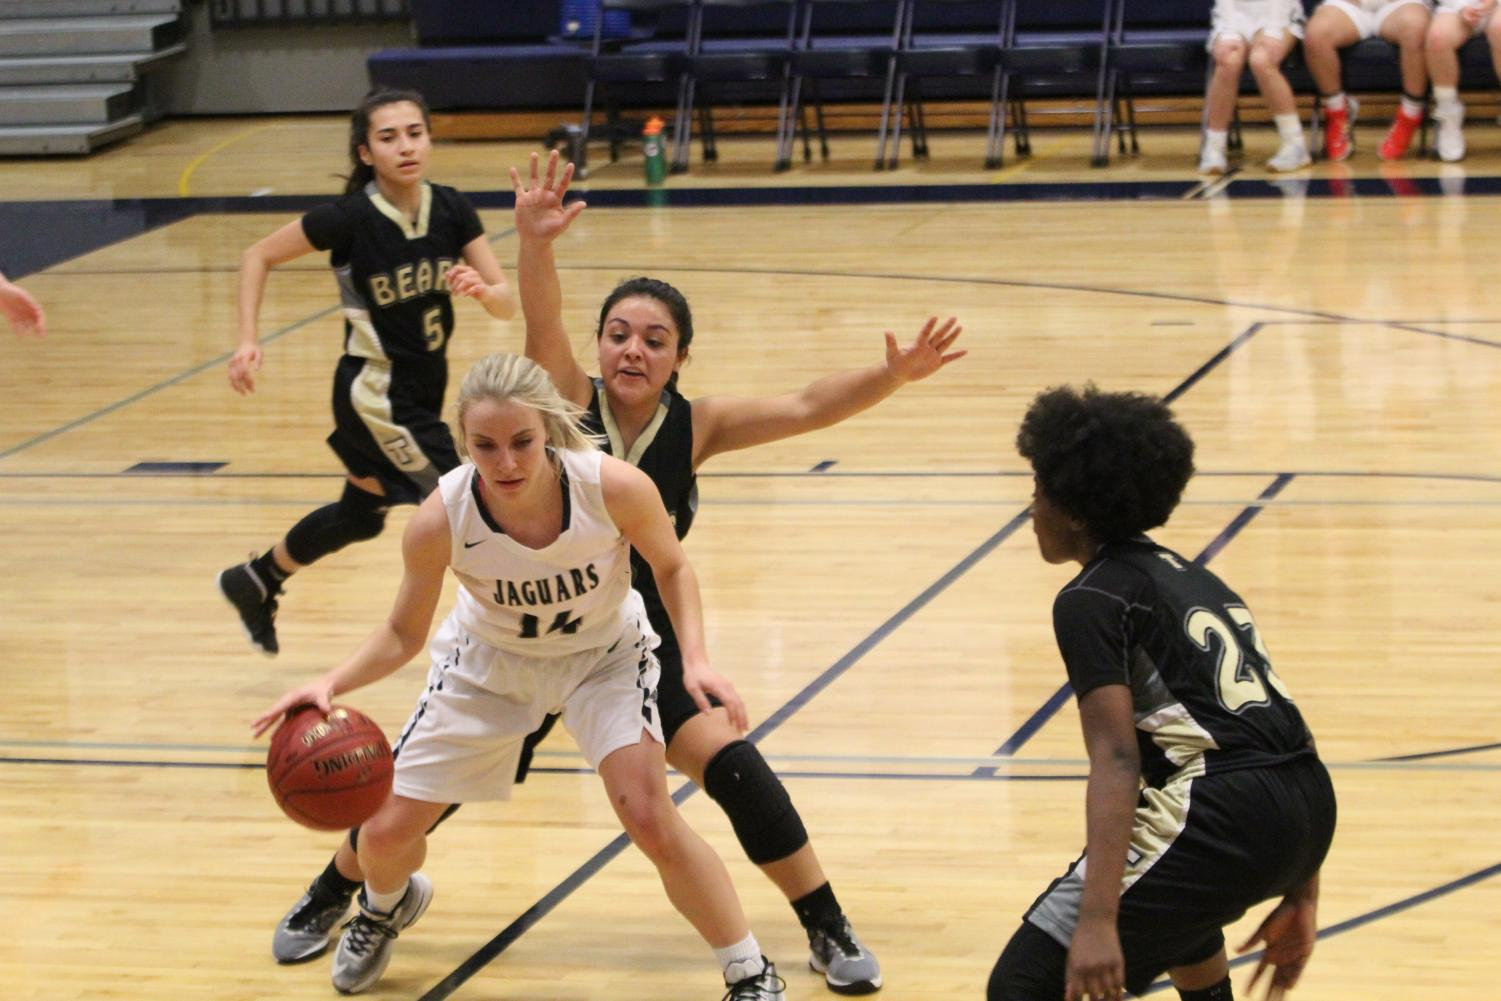 Dribbling+around+her+opponent%2C+senior+Addie+Hinkle+tries+to+get+the++ball+to+a+fellow+teammate.